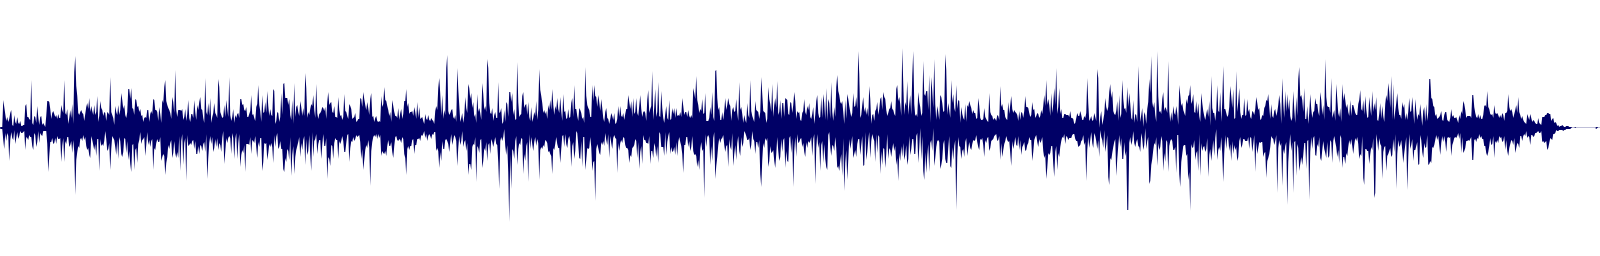 waveform of track #110334